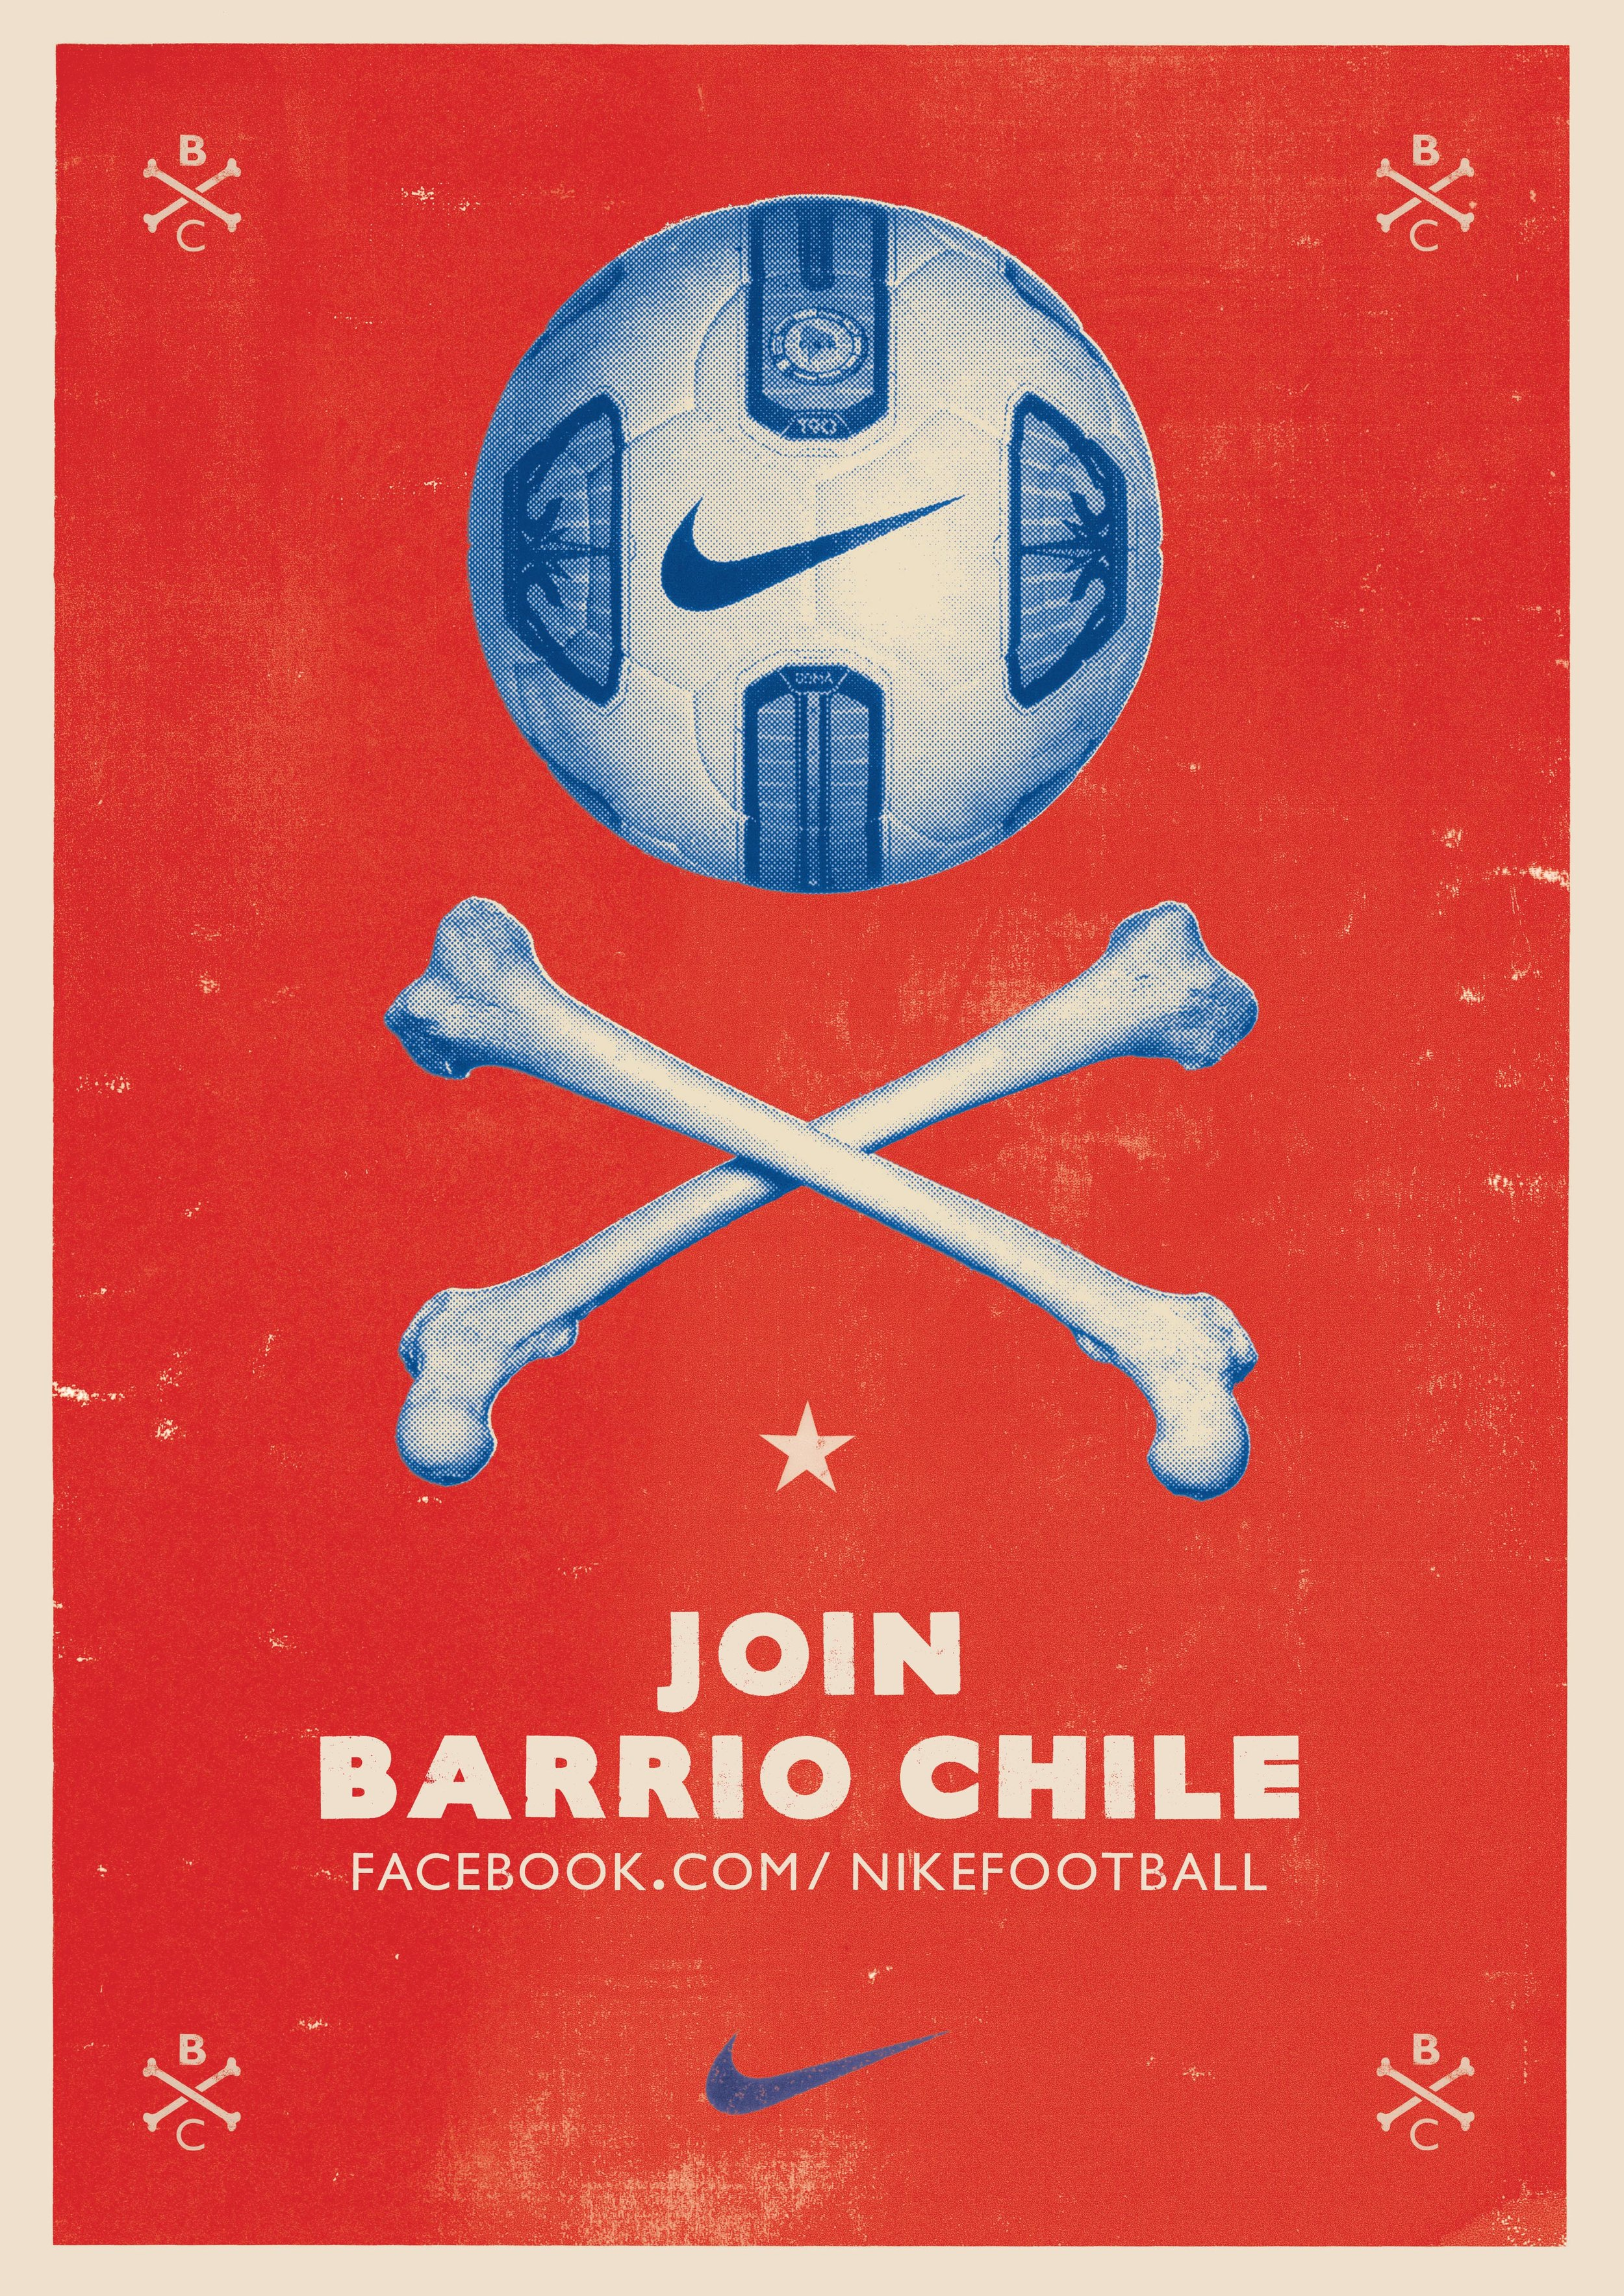 Copa_Join_Barrio_A3_Chile.jpg